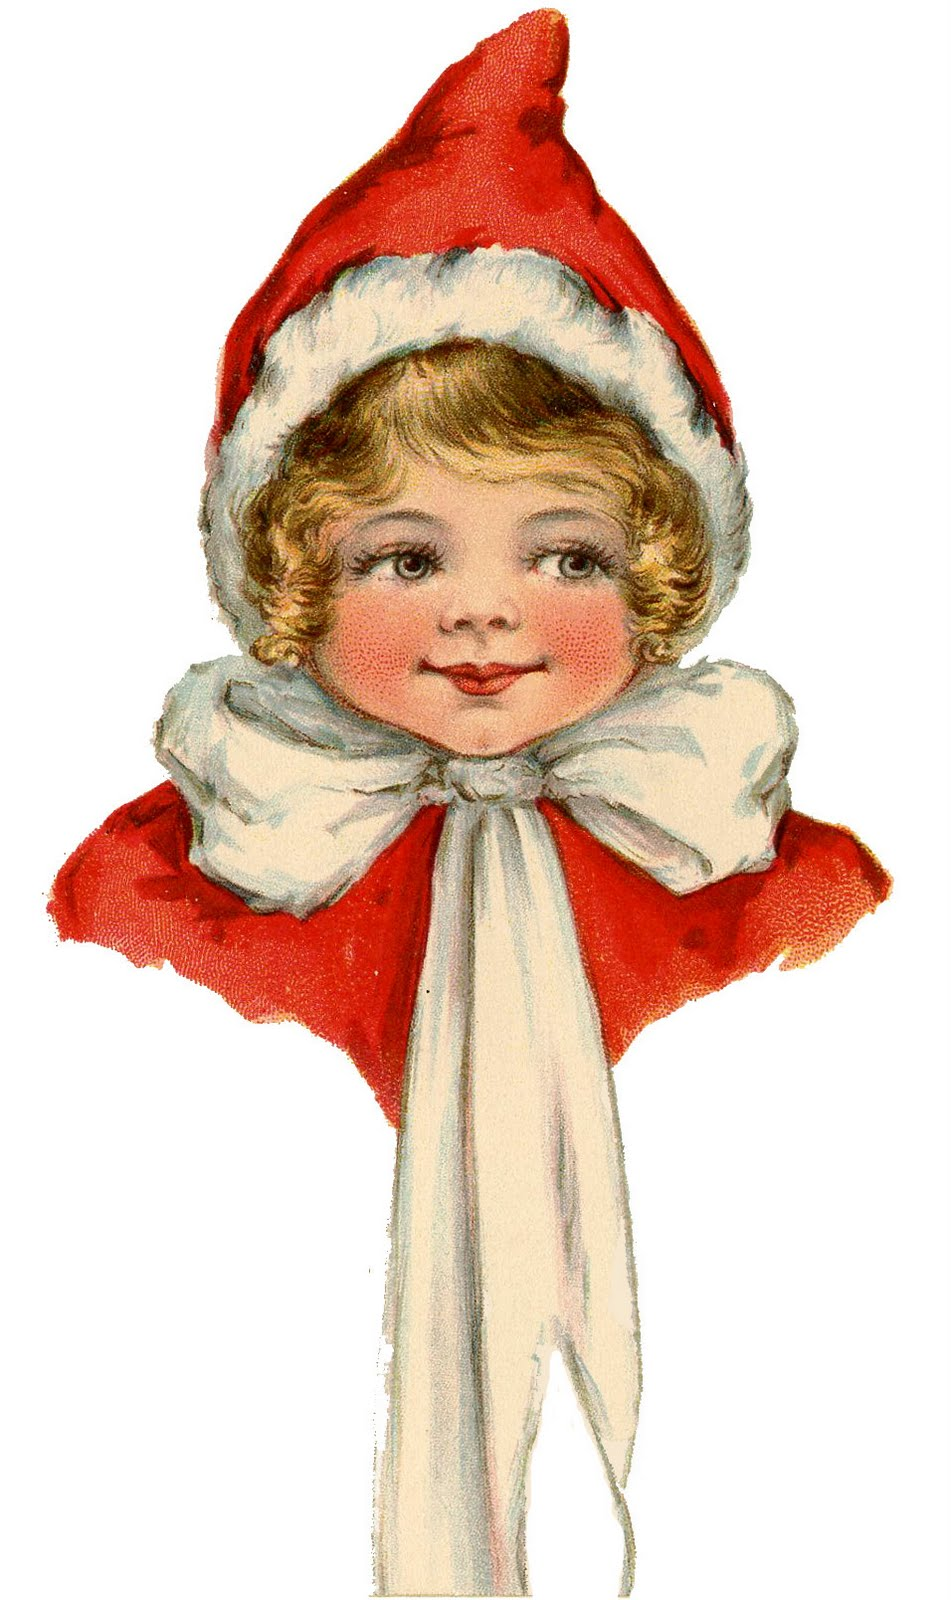 Elf clipart vintage Vintage Elf Adorable Vintage Art